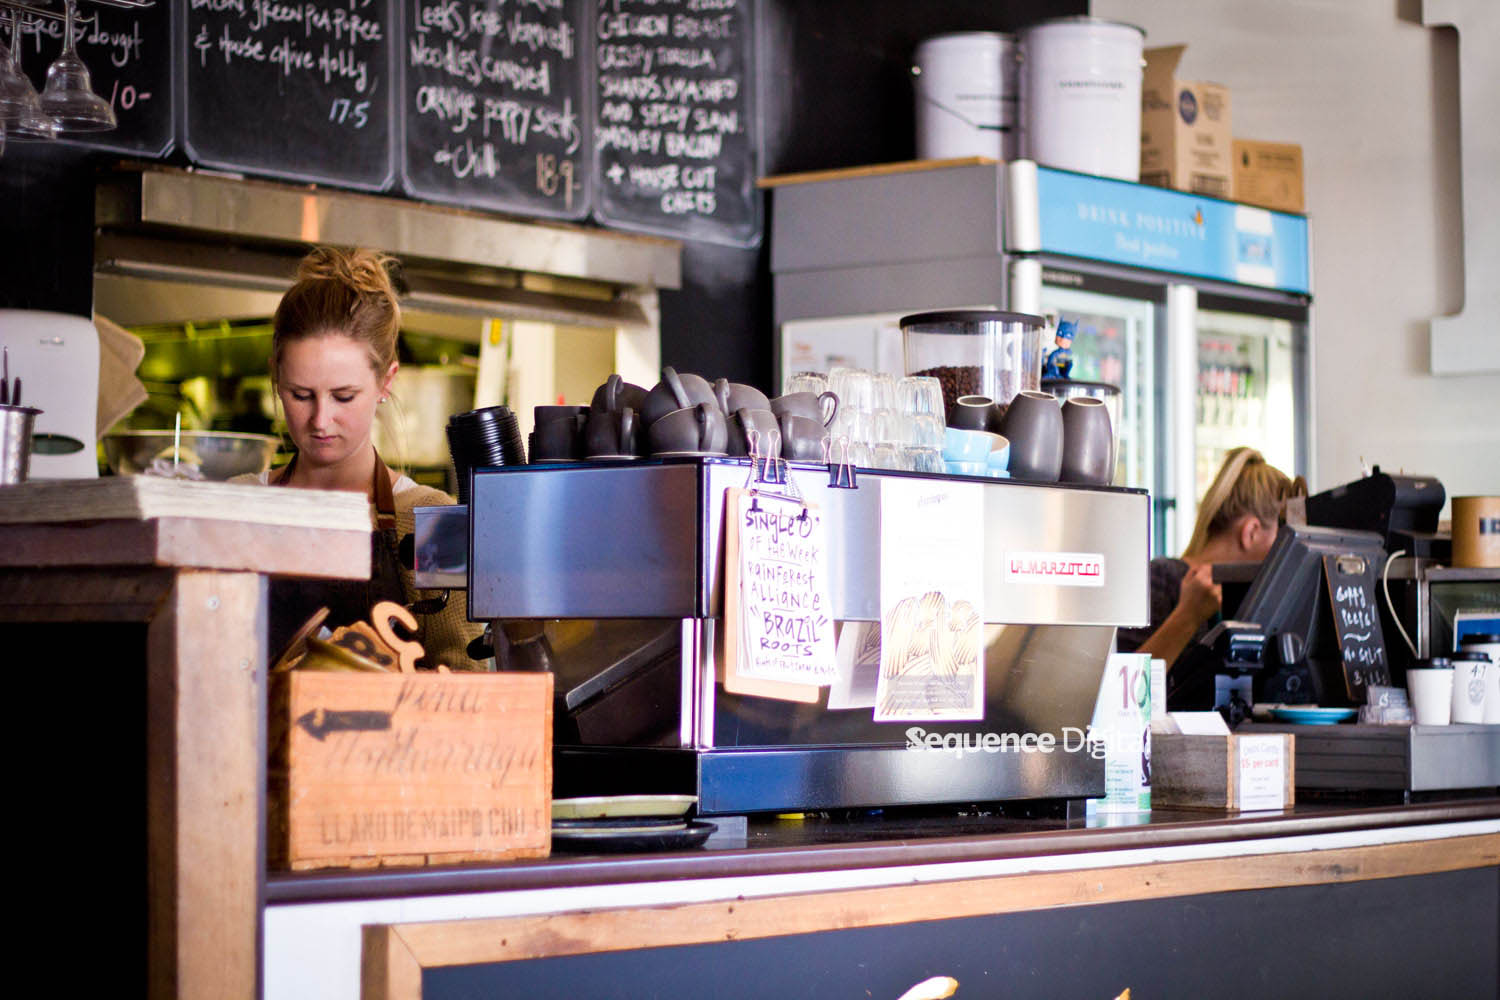 63 Degrees Cafe Geelong - Making Coffee